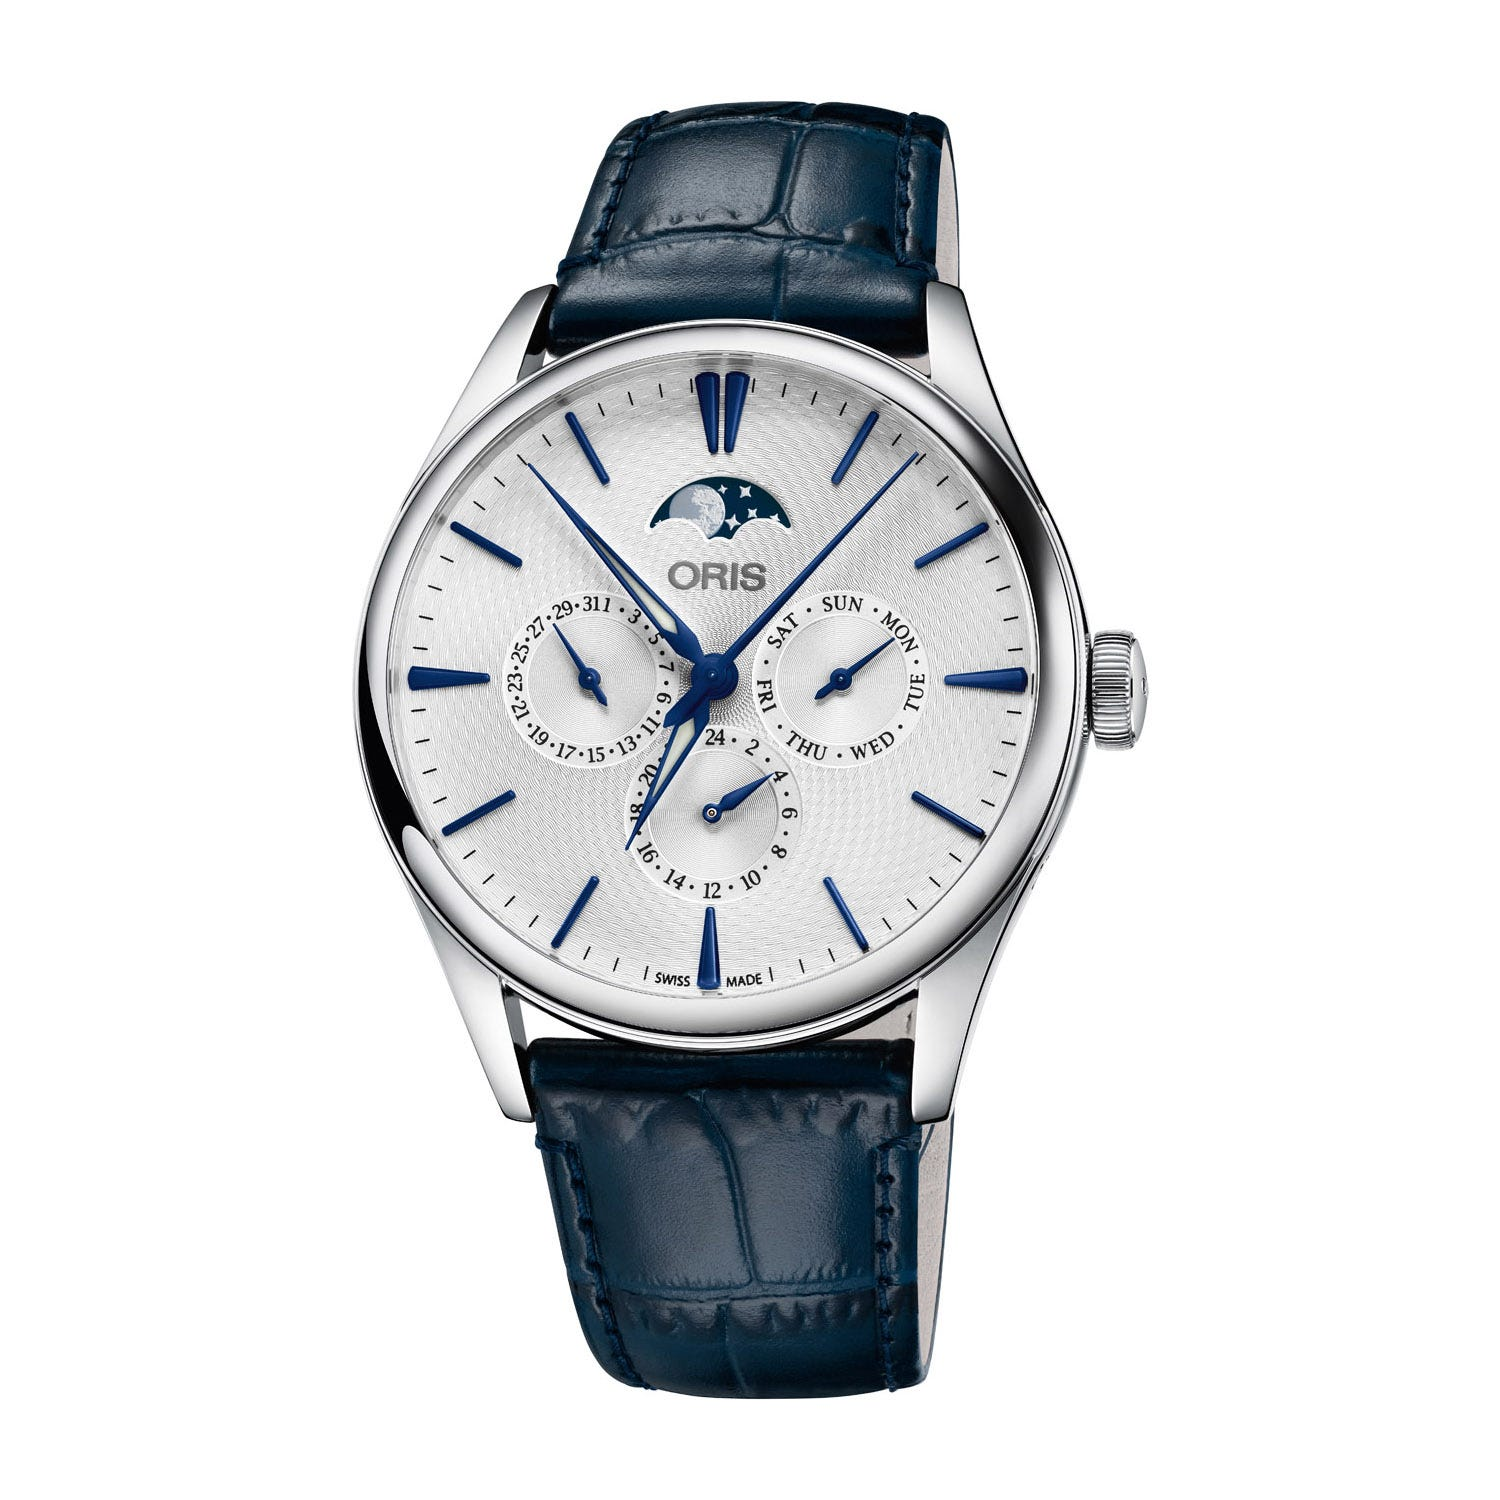 Oris Artelier Complication Automatic Blue Leather Strap Mens Watch